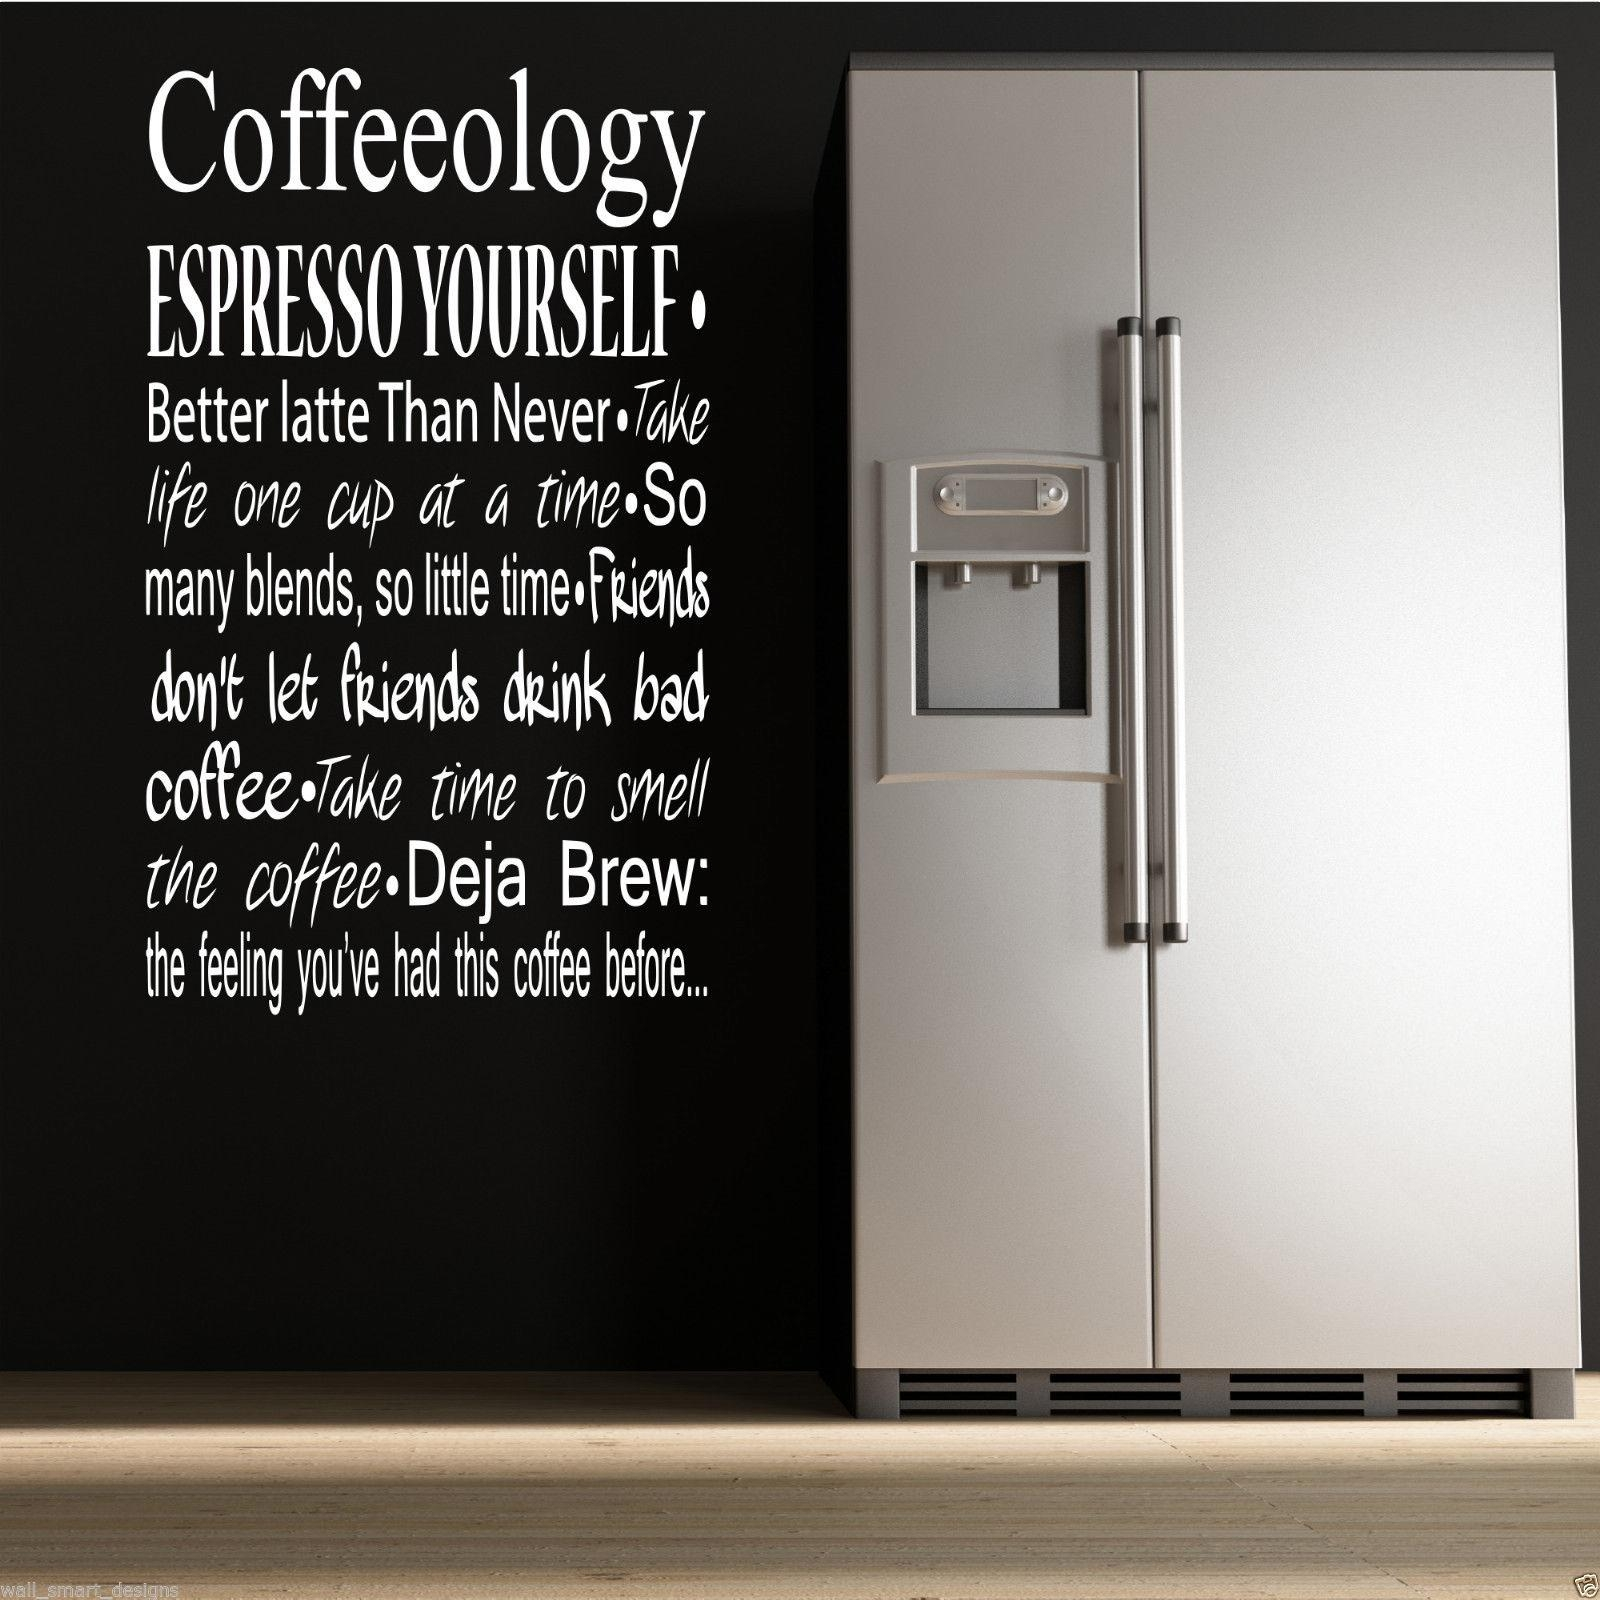 Coffee Coffeeology Kitchen Wall Art Sticker Quote Decal Mural With Regard To Cafe Latte Kitchen Wall Art (Image 7 of 20)